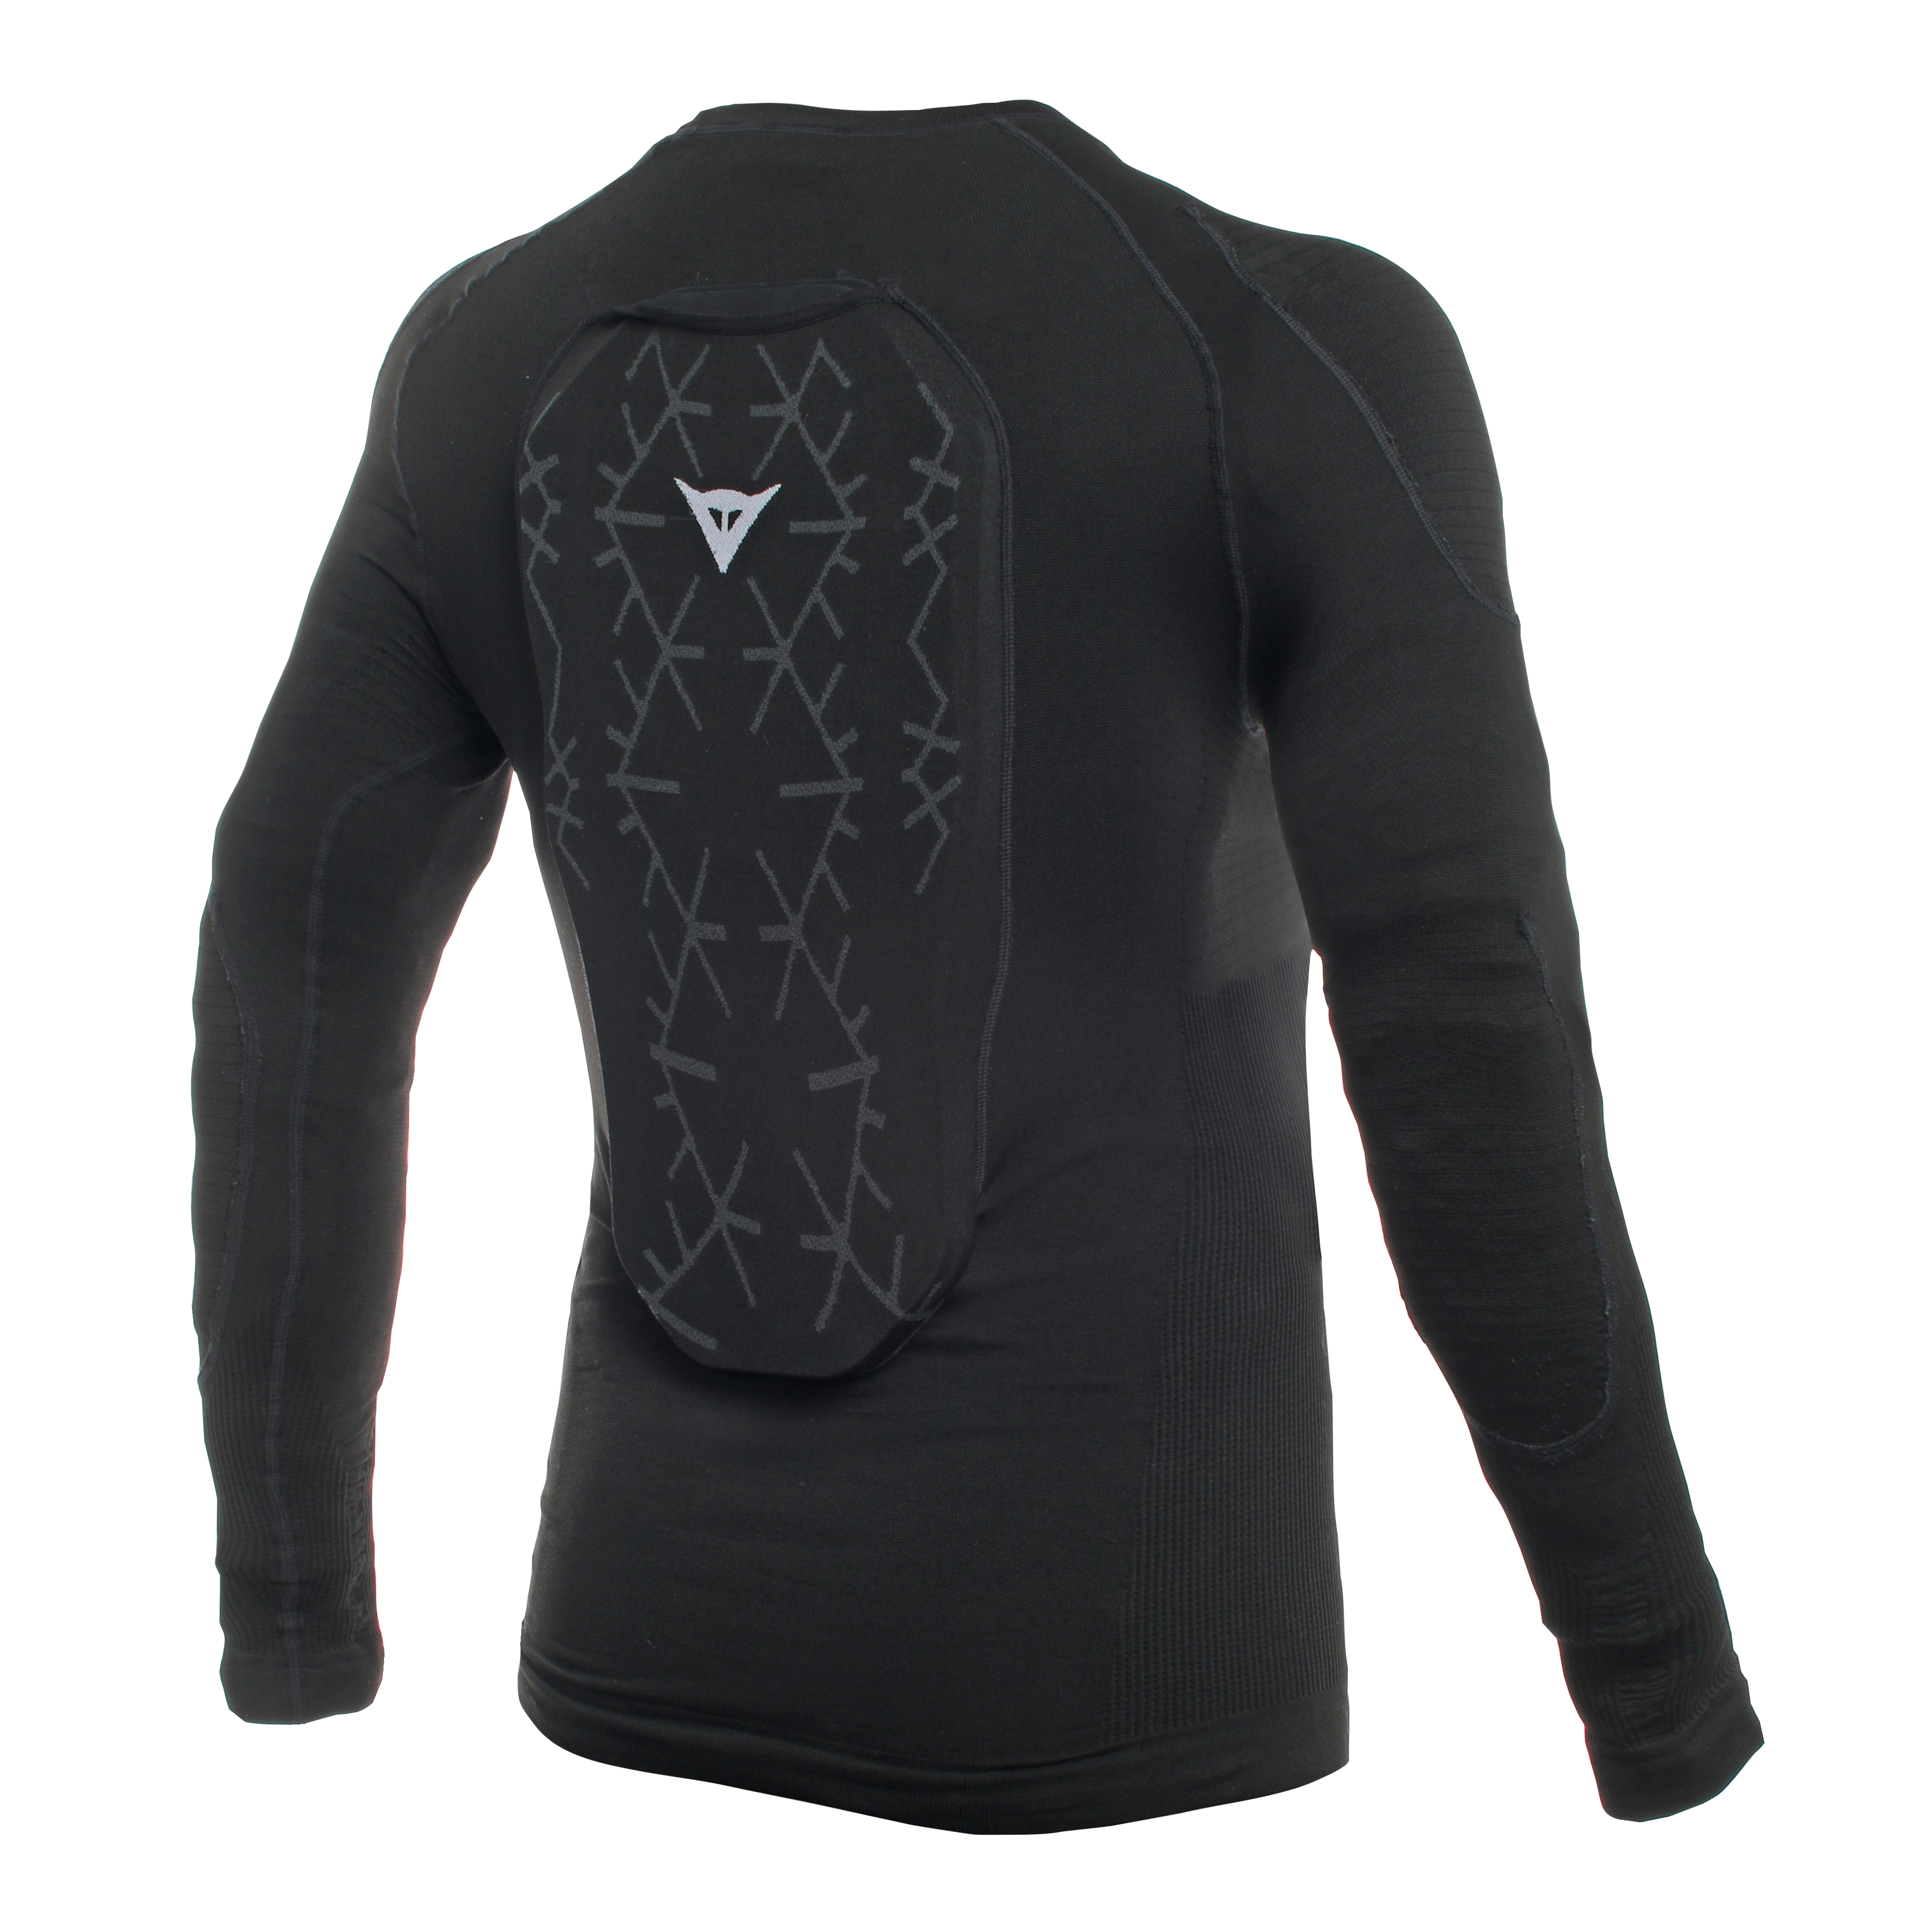 DAINESE TRAILKNIT BACK PROTECTOR SHIRT WINTER BLACK - 2018